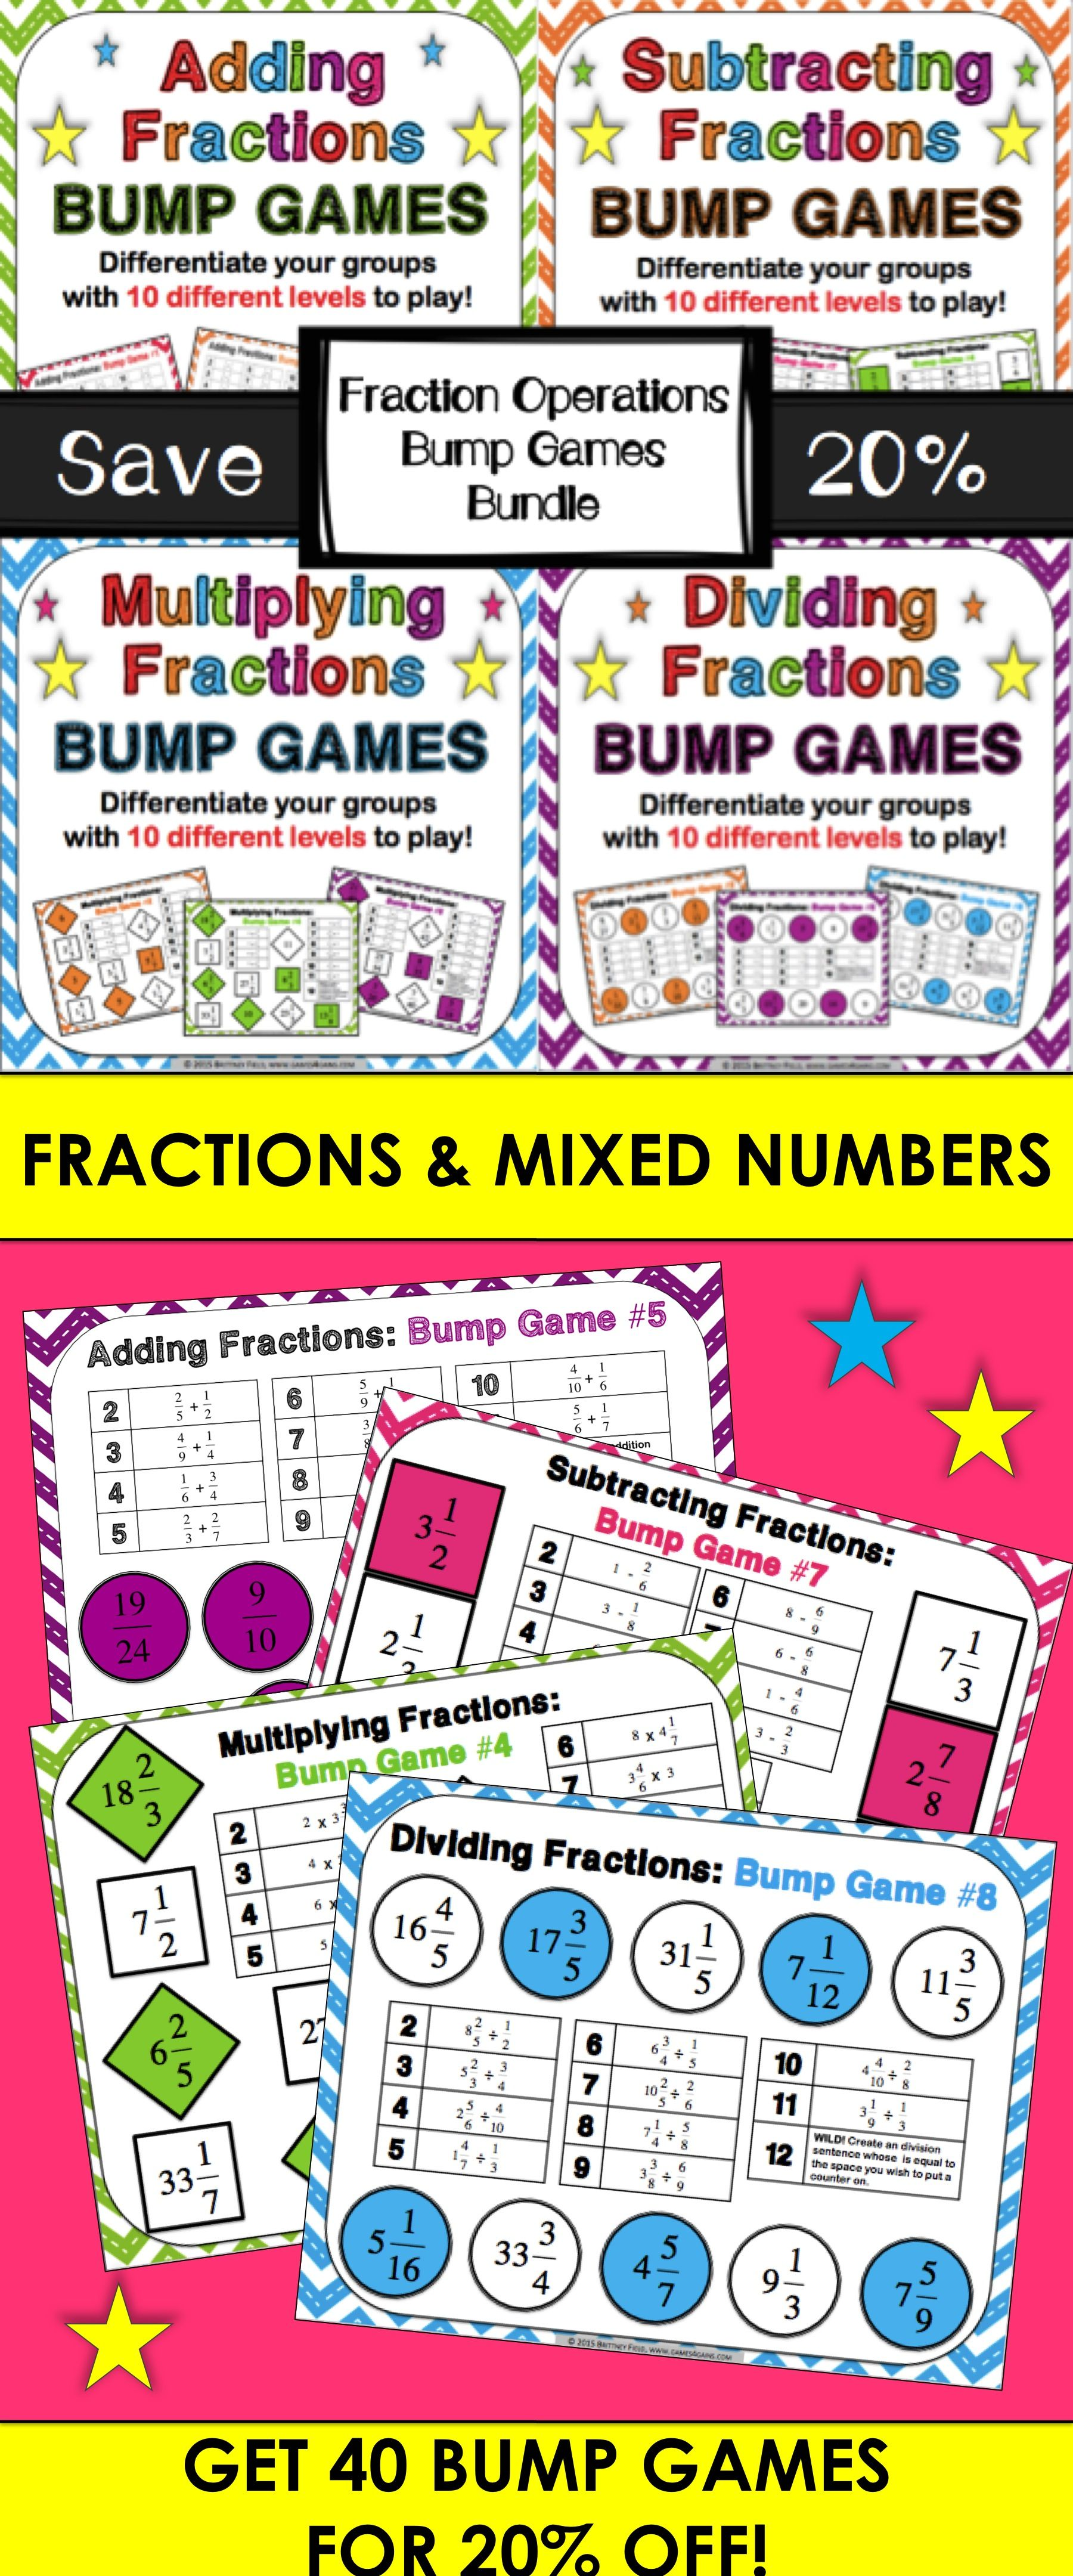 Add Fractions Subtract Fractions Multiply Fractions